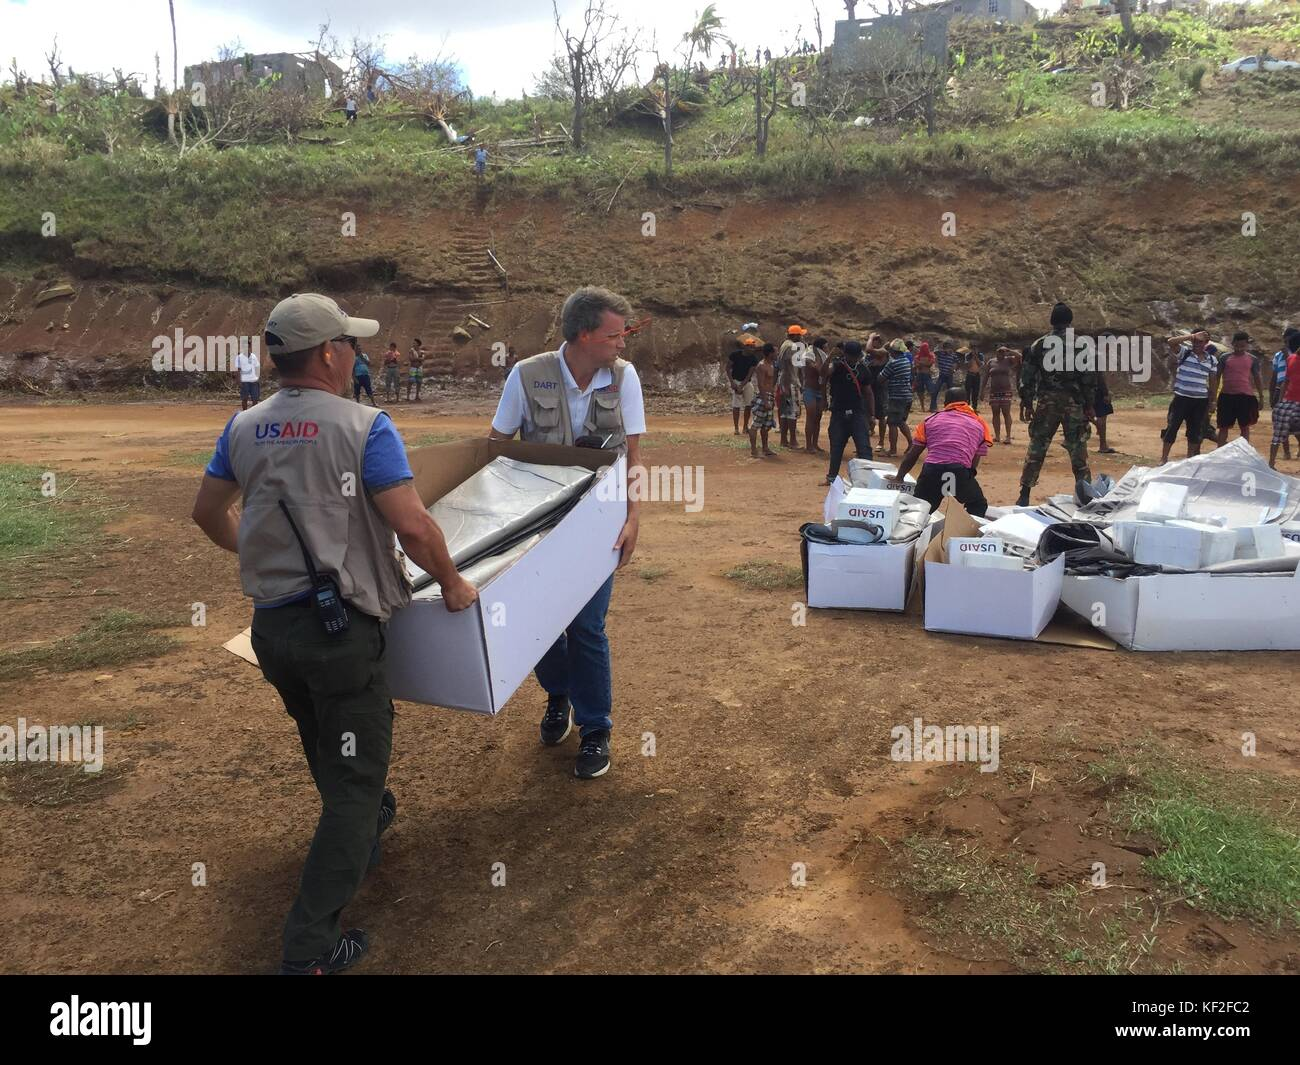 U.S. Agency for International Development (USAID) Development Disaster Assistance Response Team members carry supplies - Stock Image